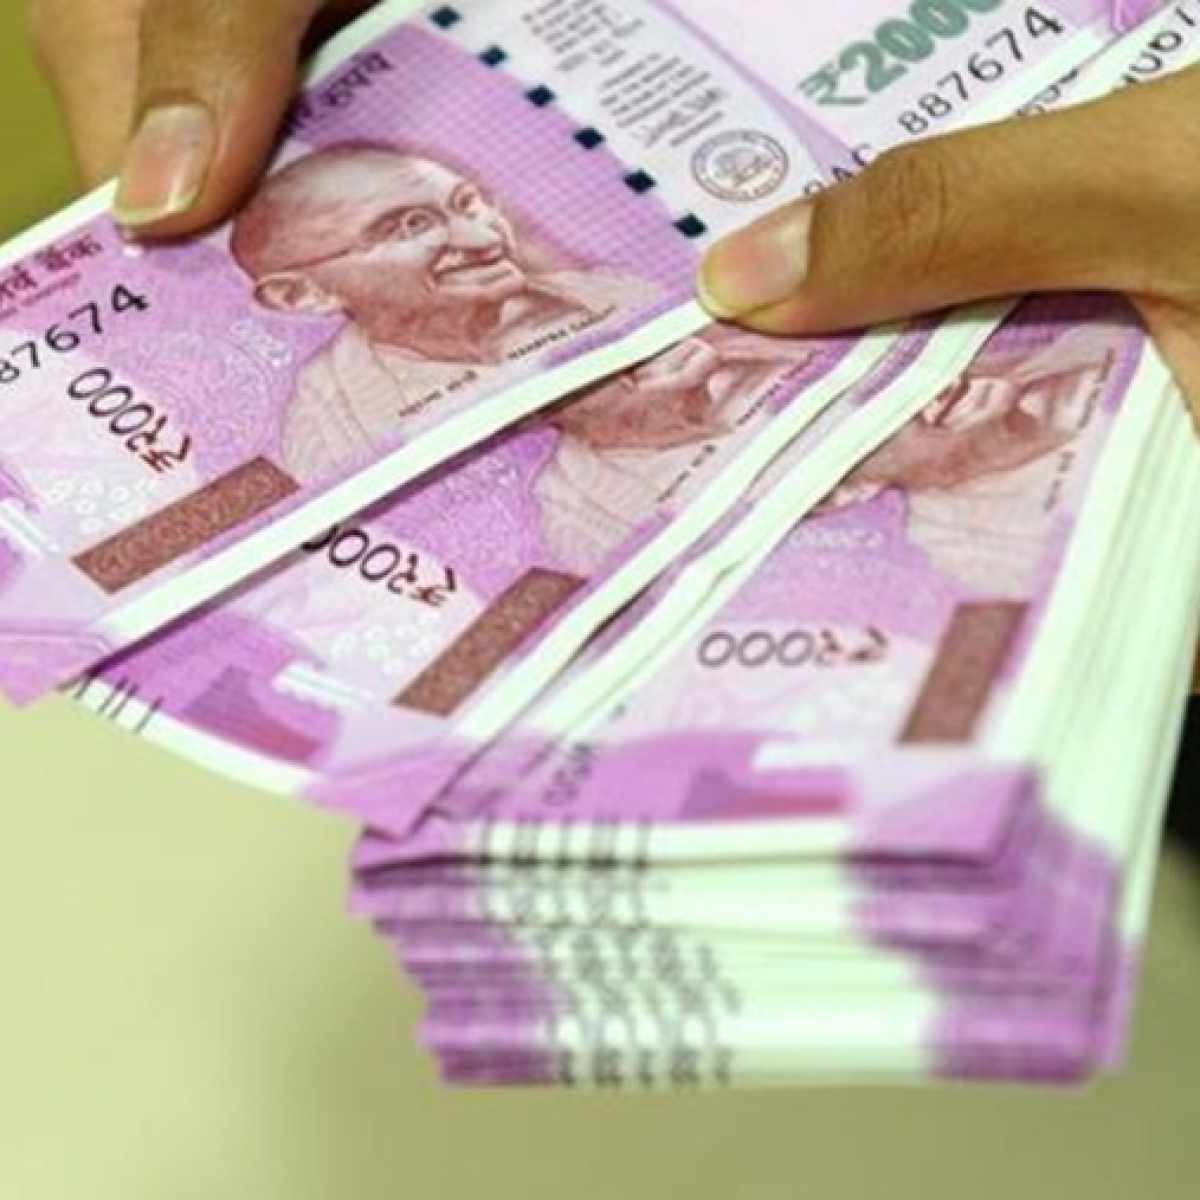 7th Pay Commission: Central government employees likely to get 5% DA hike as Dusshera gift